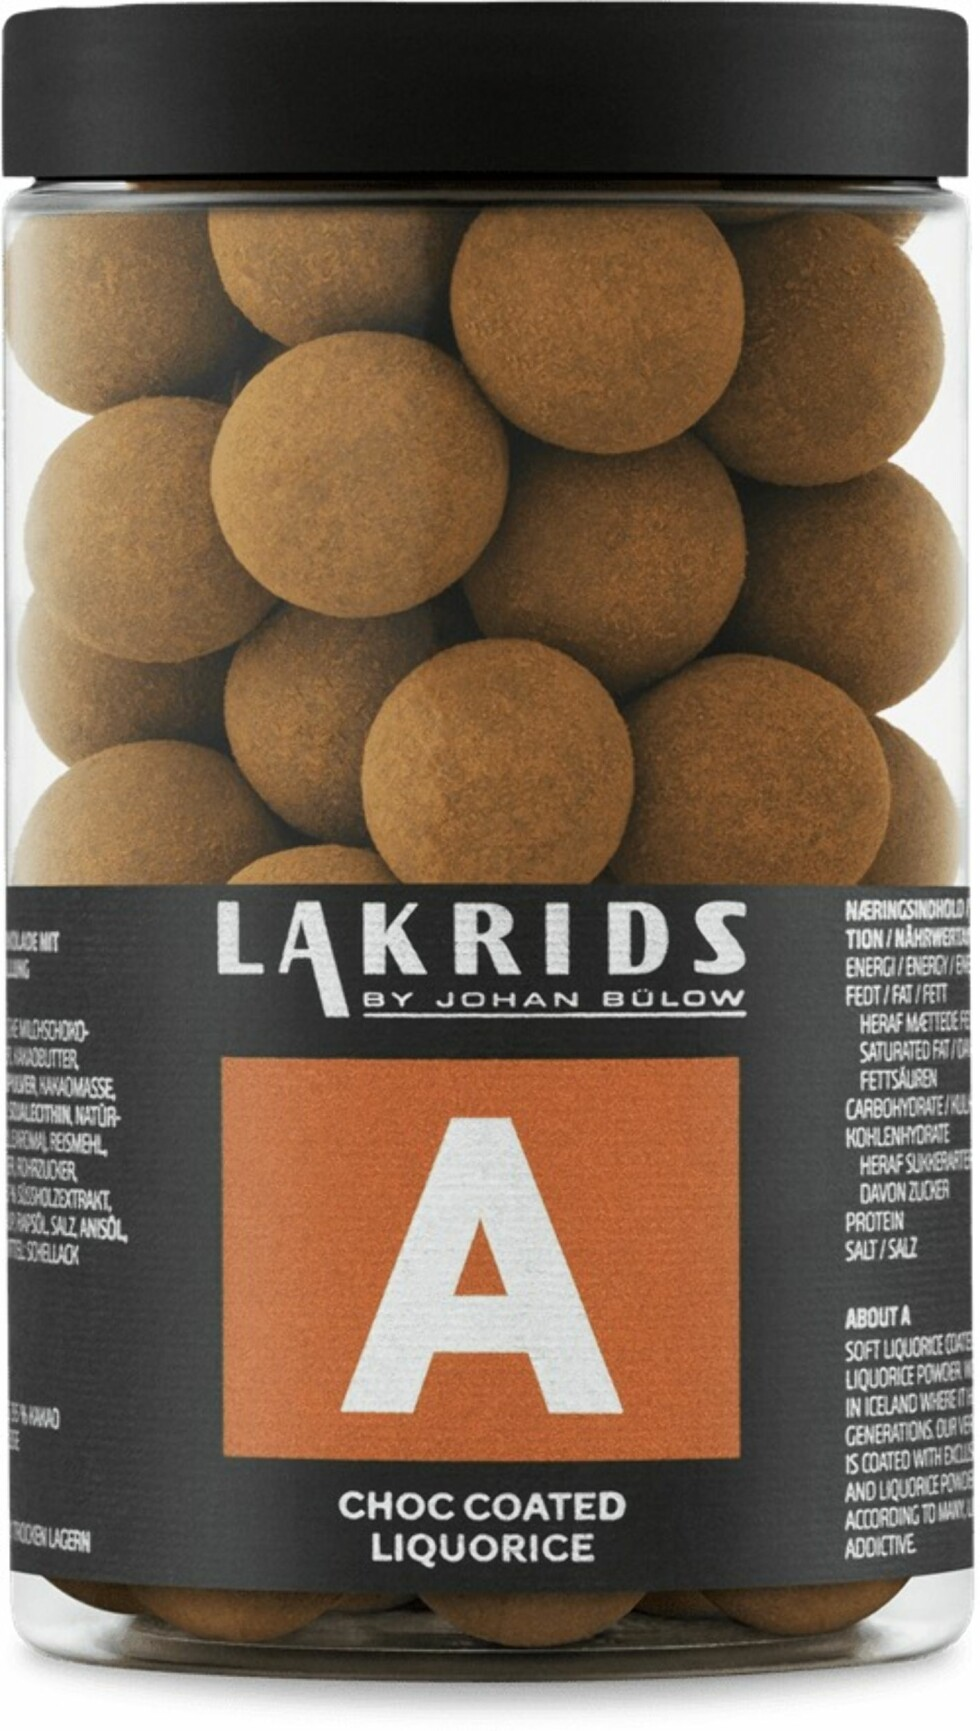 Lakris |175,-| https://no.lakrids.nu/collections/choc-coated-liquorice/A